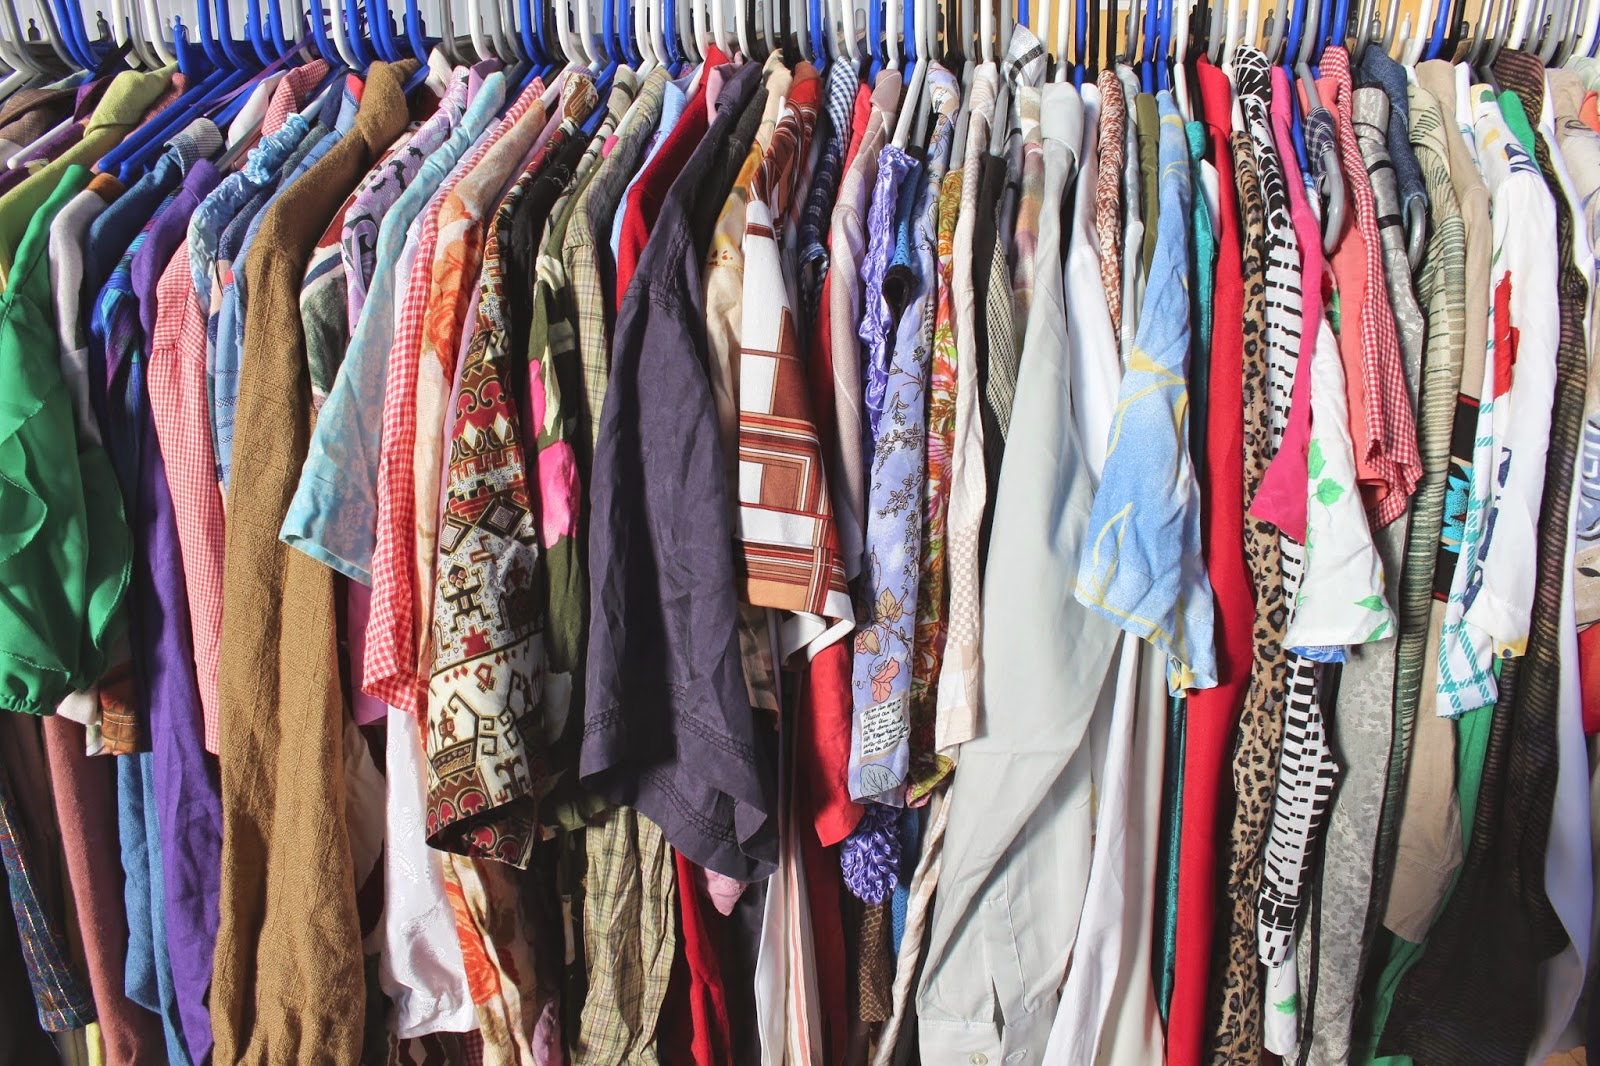 Need some extra cash? Check out these tips on how to sell old clothes for money.